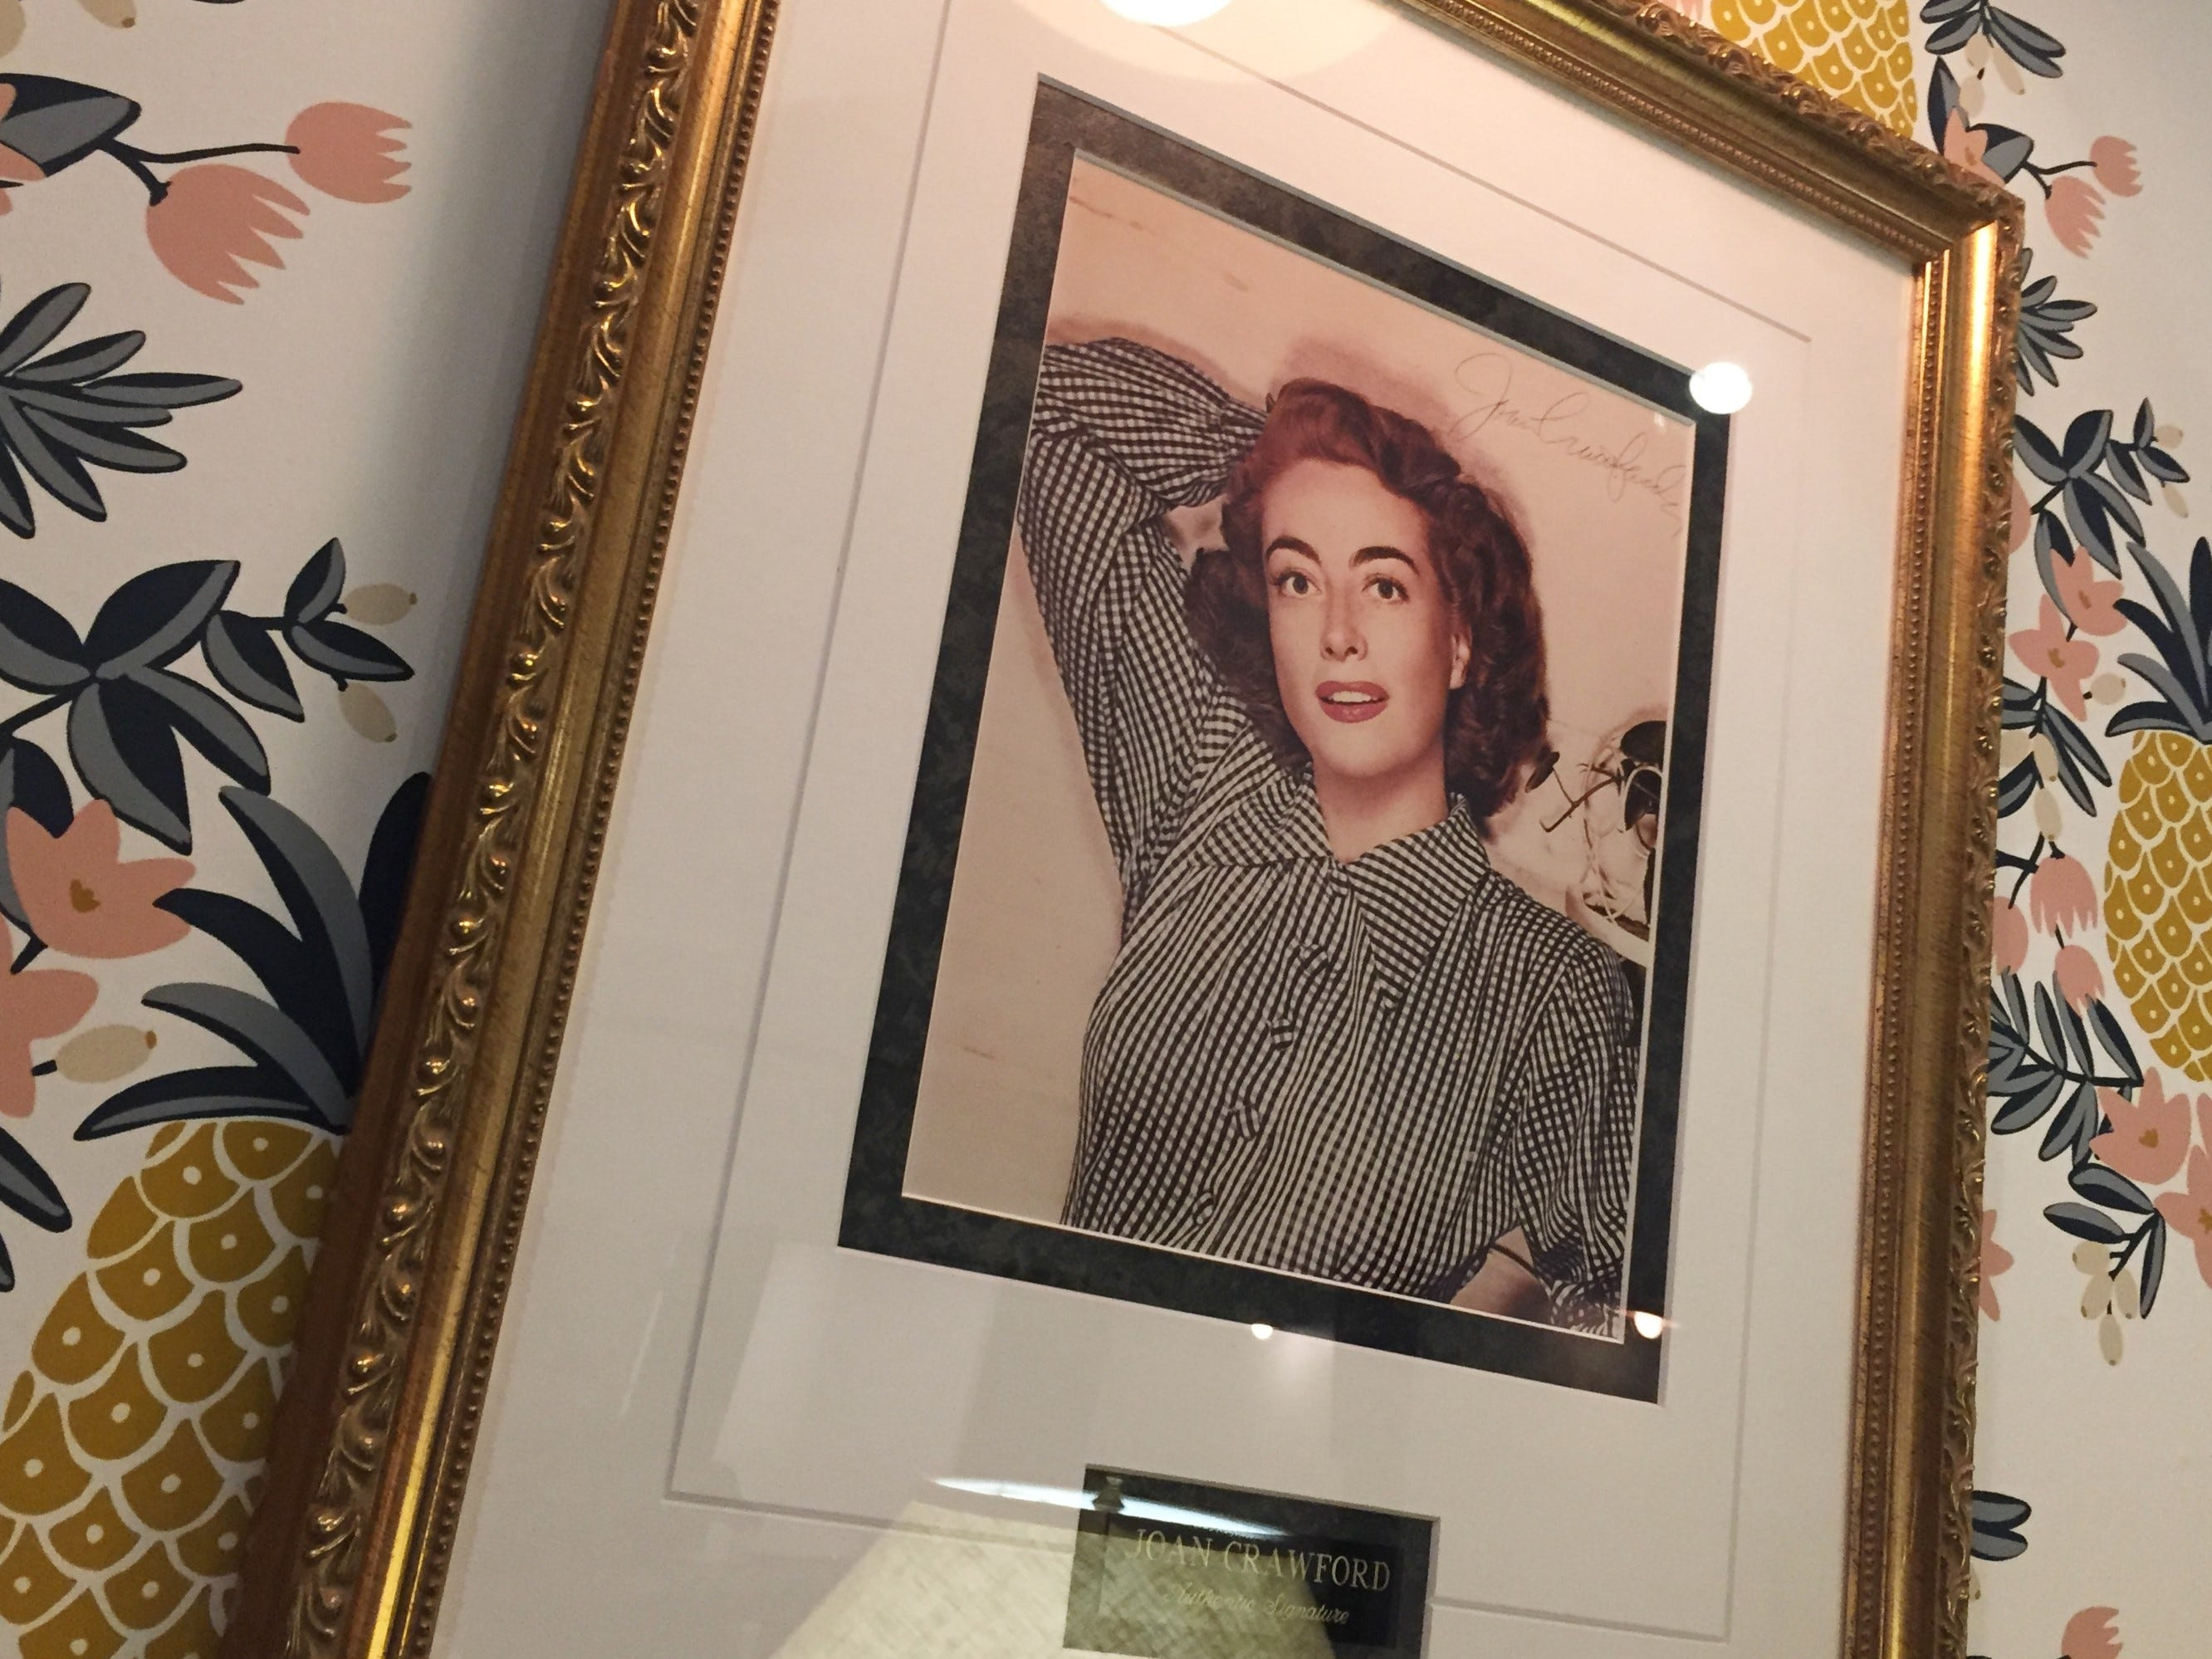 Family heirlooms like this signed portrait of actress Joan Crawford pepper the decor at Just Pop In! popcorn bar and cafe at 6406 Cornell Ave. in the Broad Ripple  community of Indianapolis.